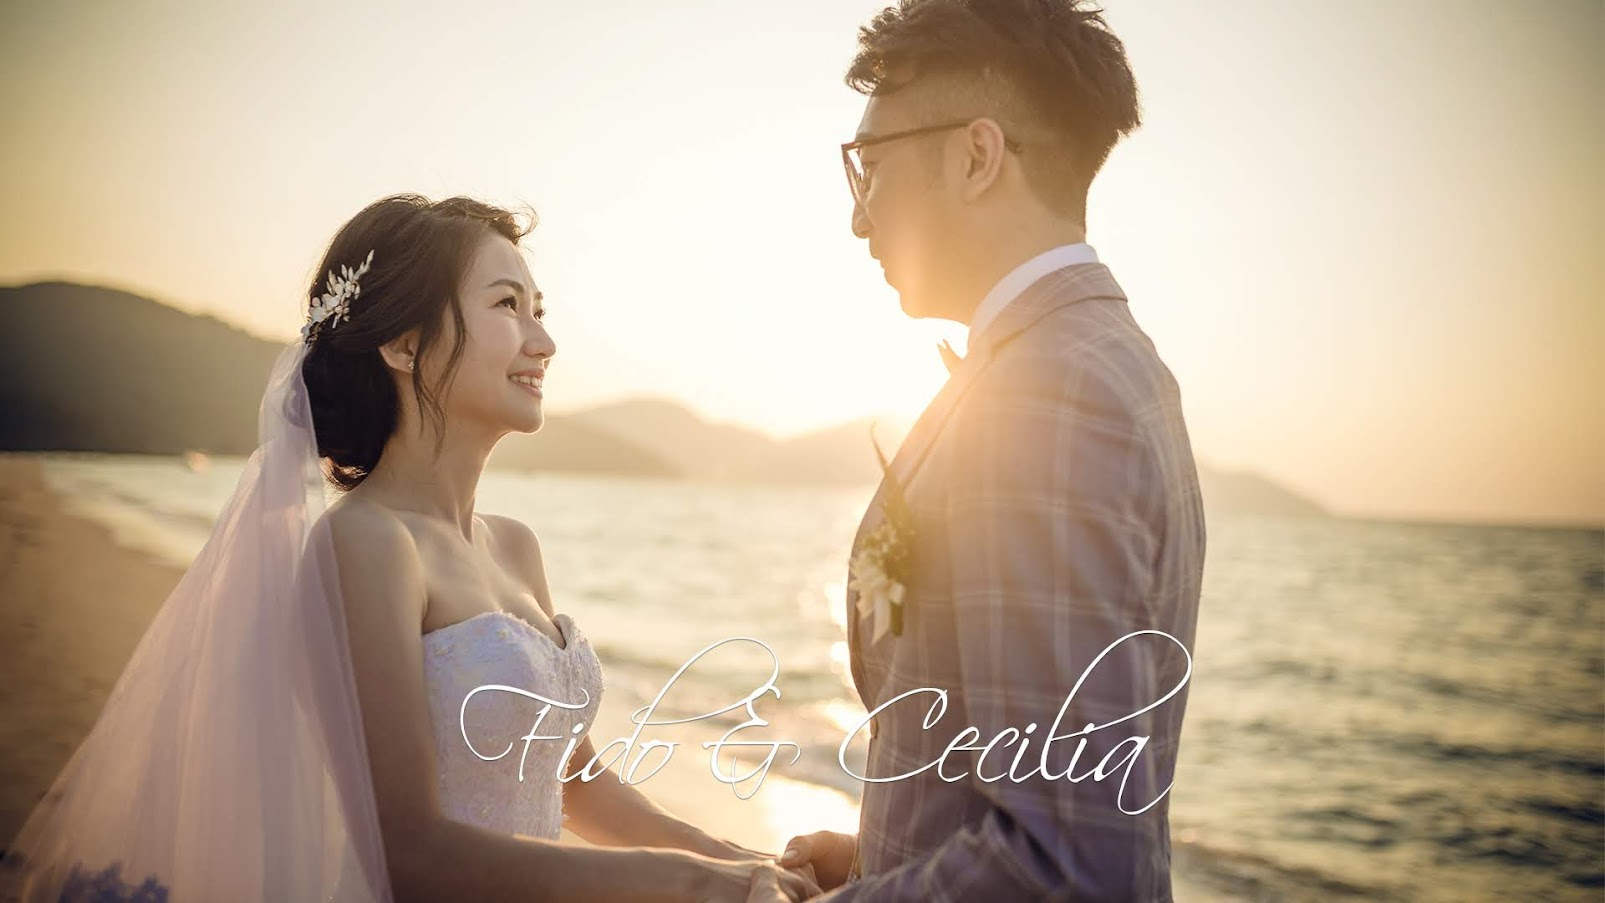 Fido & Cecilia Wedding Videography at Park Royal Penang